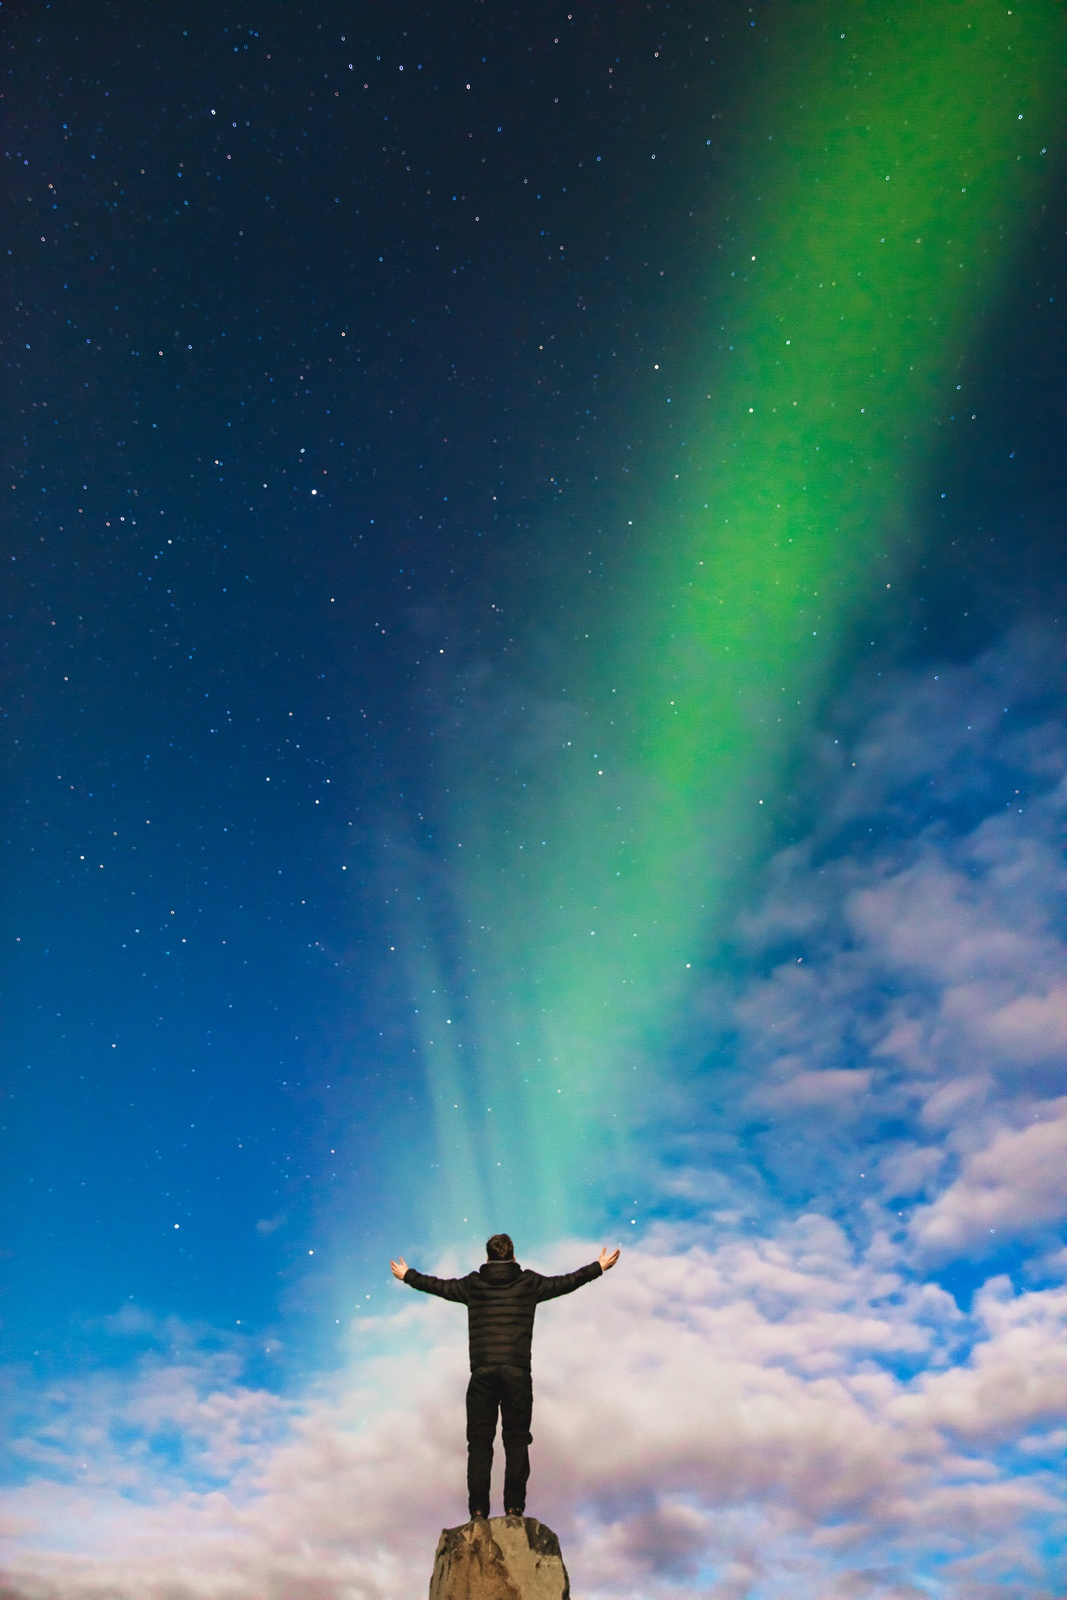 Man Standing on Rock Under Green Aurora Borealis And White Clouds by Joshua-Earle